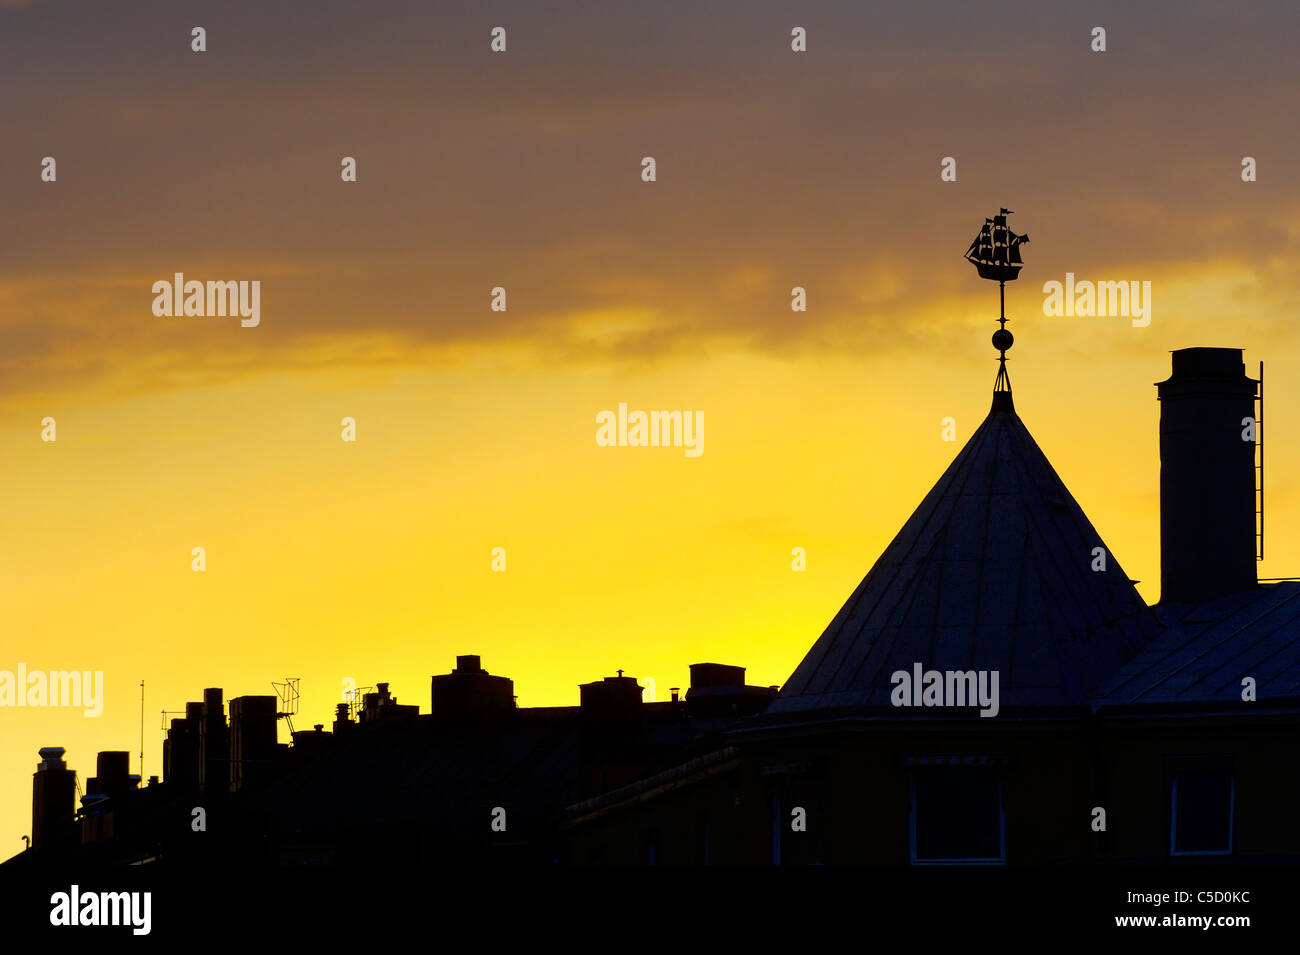 High section of silhouette buildings against yellow sky at sunset, Stockholm, Sweden - Stock Image